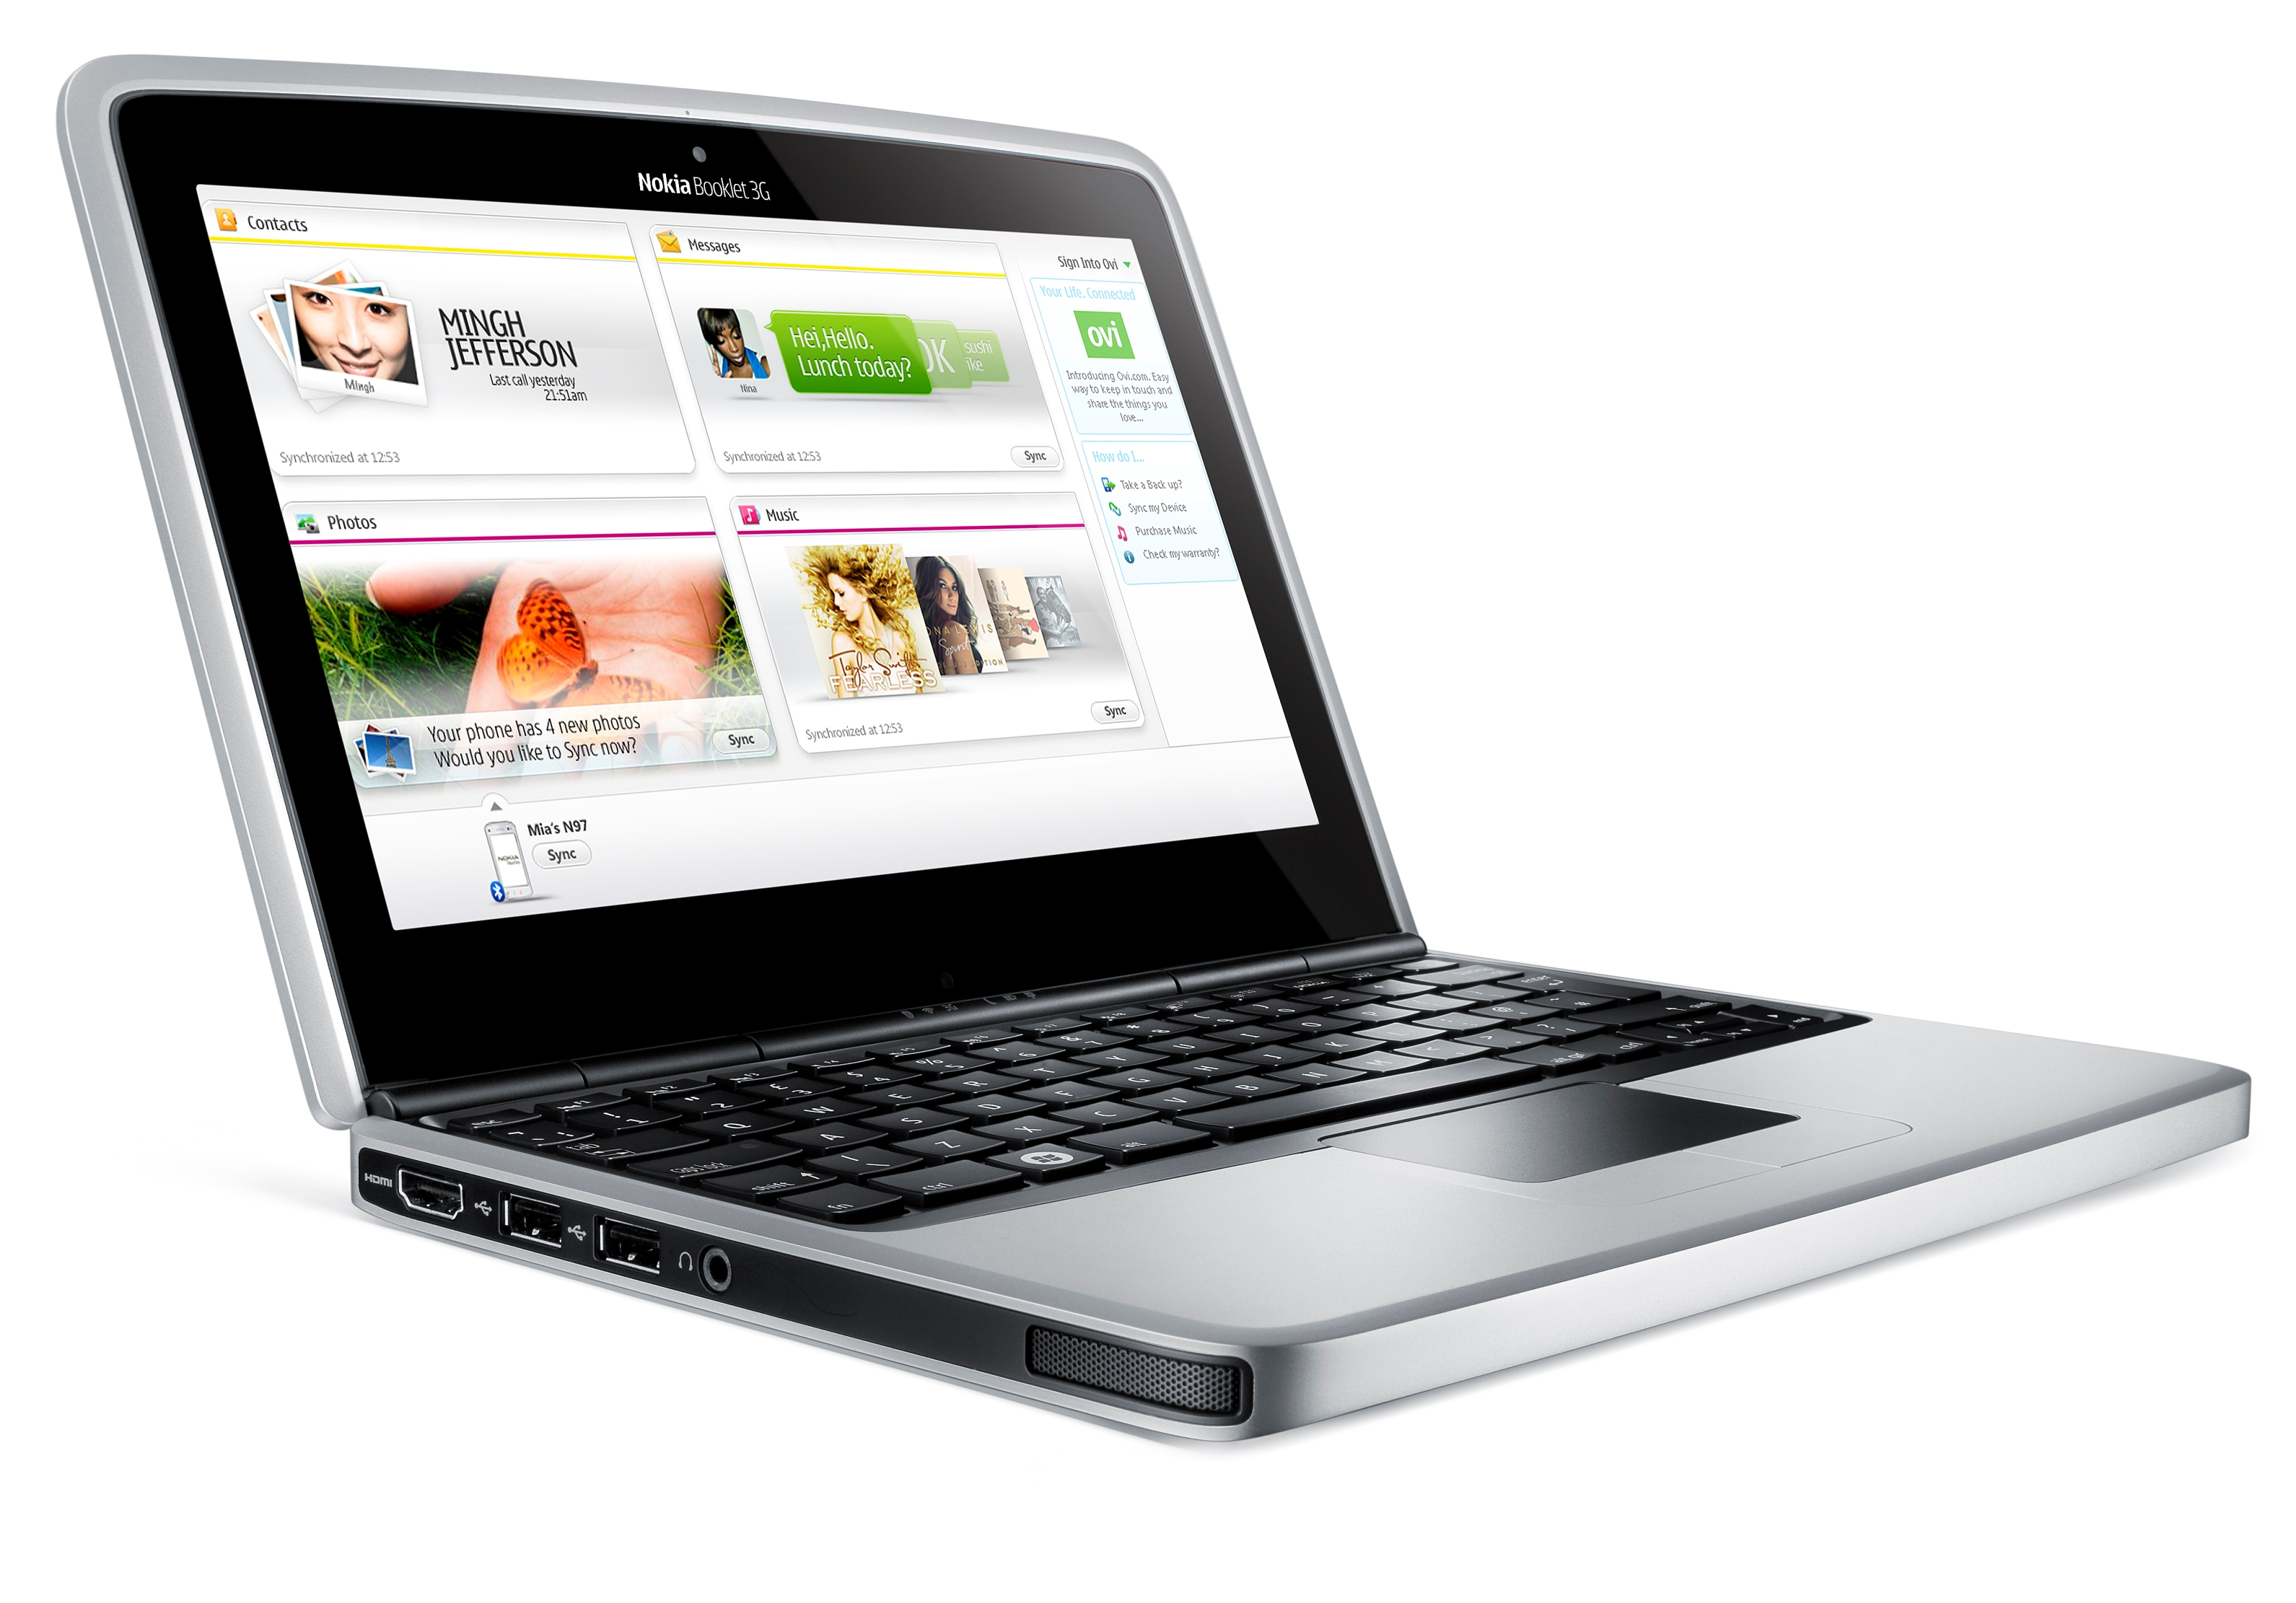 Nokia - Booklet 3G - front